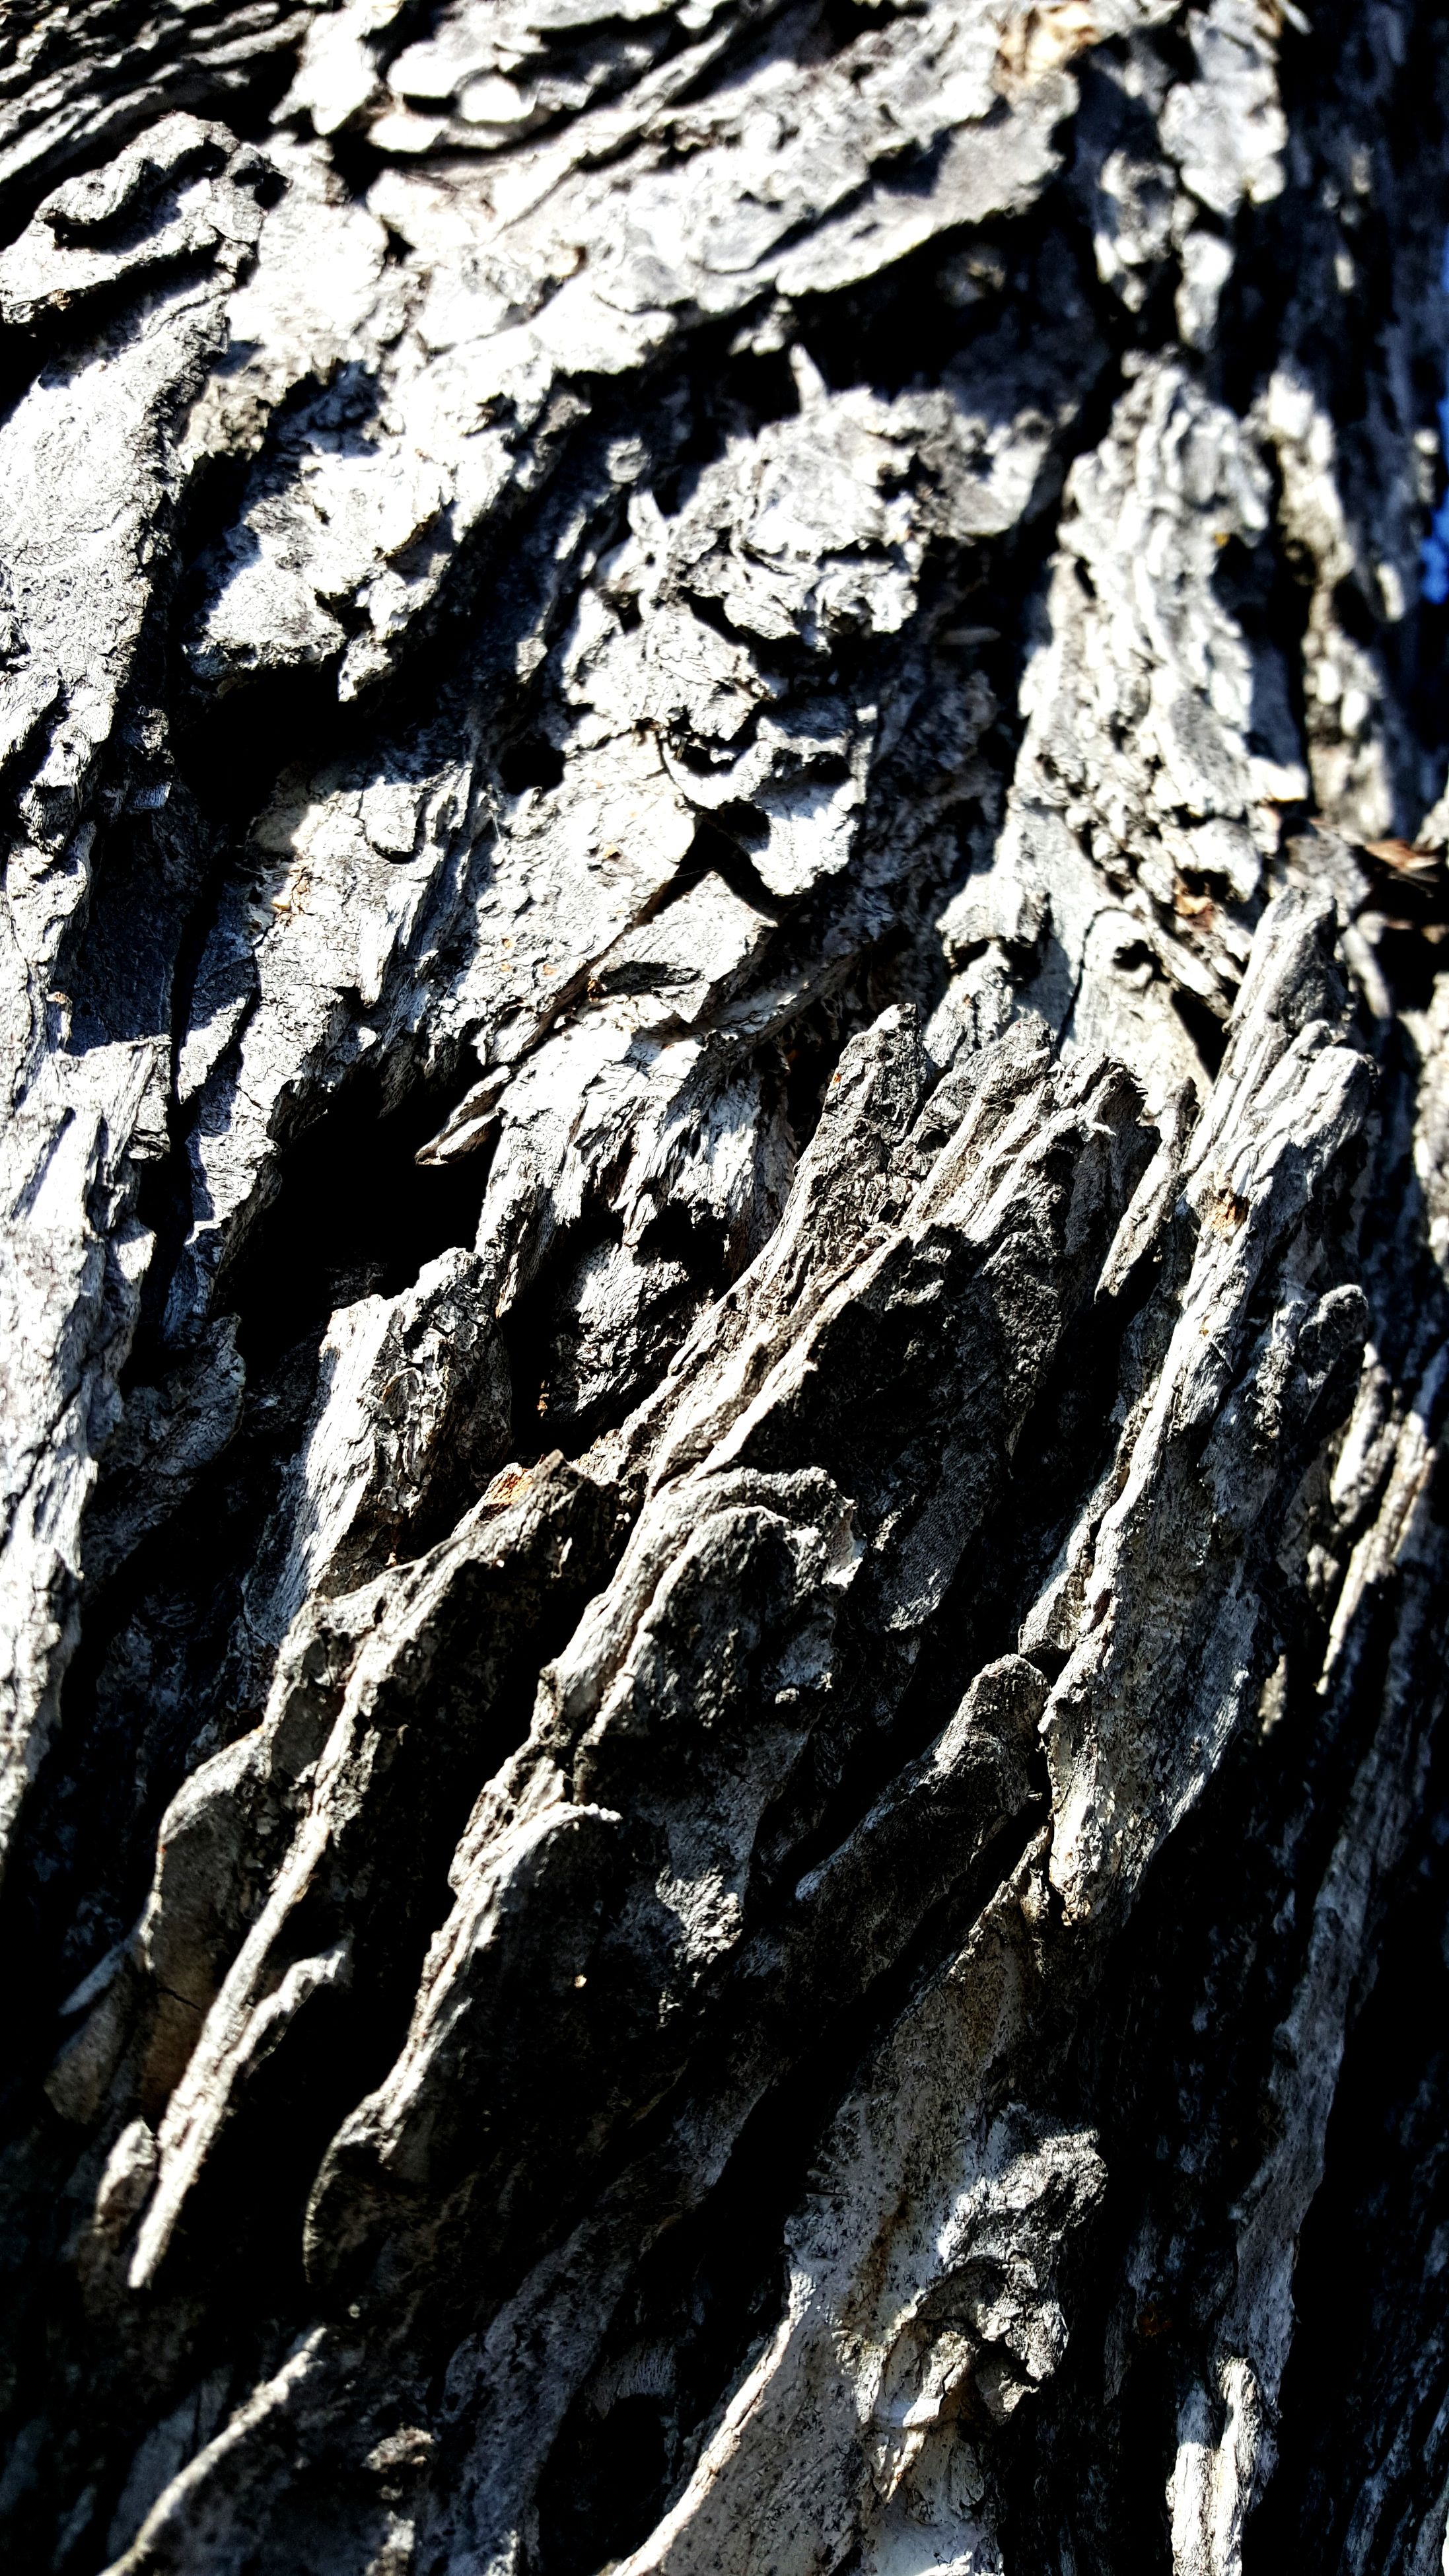 textured, full frame, rough, backgrounds, close-up, tree trunk, nature, bark, natural pattern, pattern, detail, no people, day, outdoors, wood - material, high angle view, tree, weathered, brown, cracked